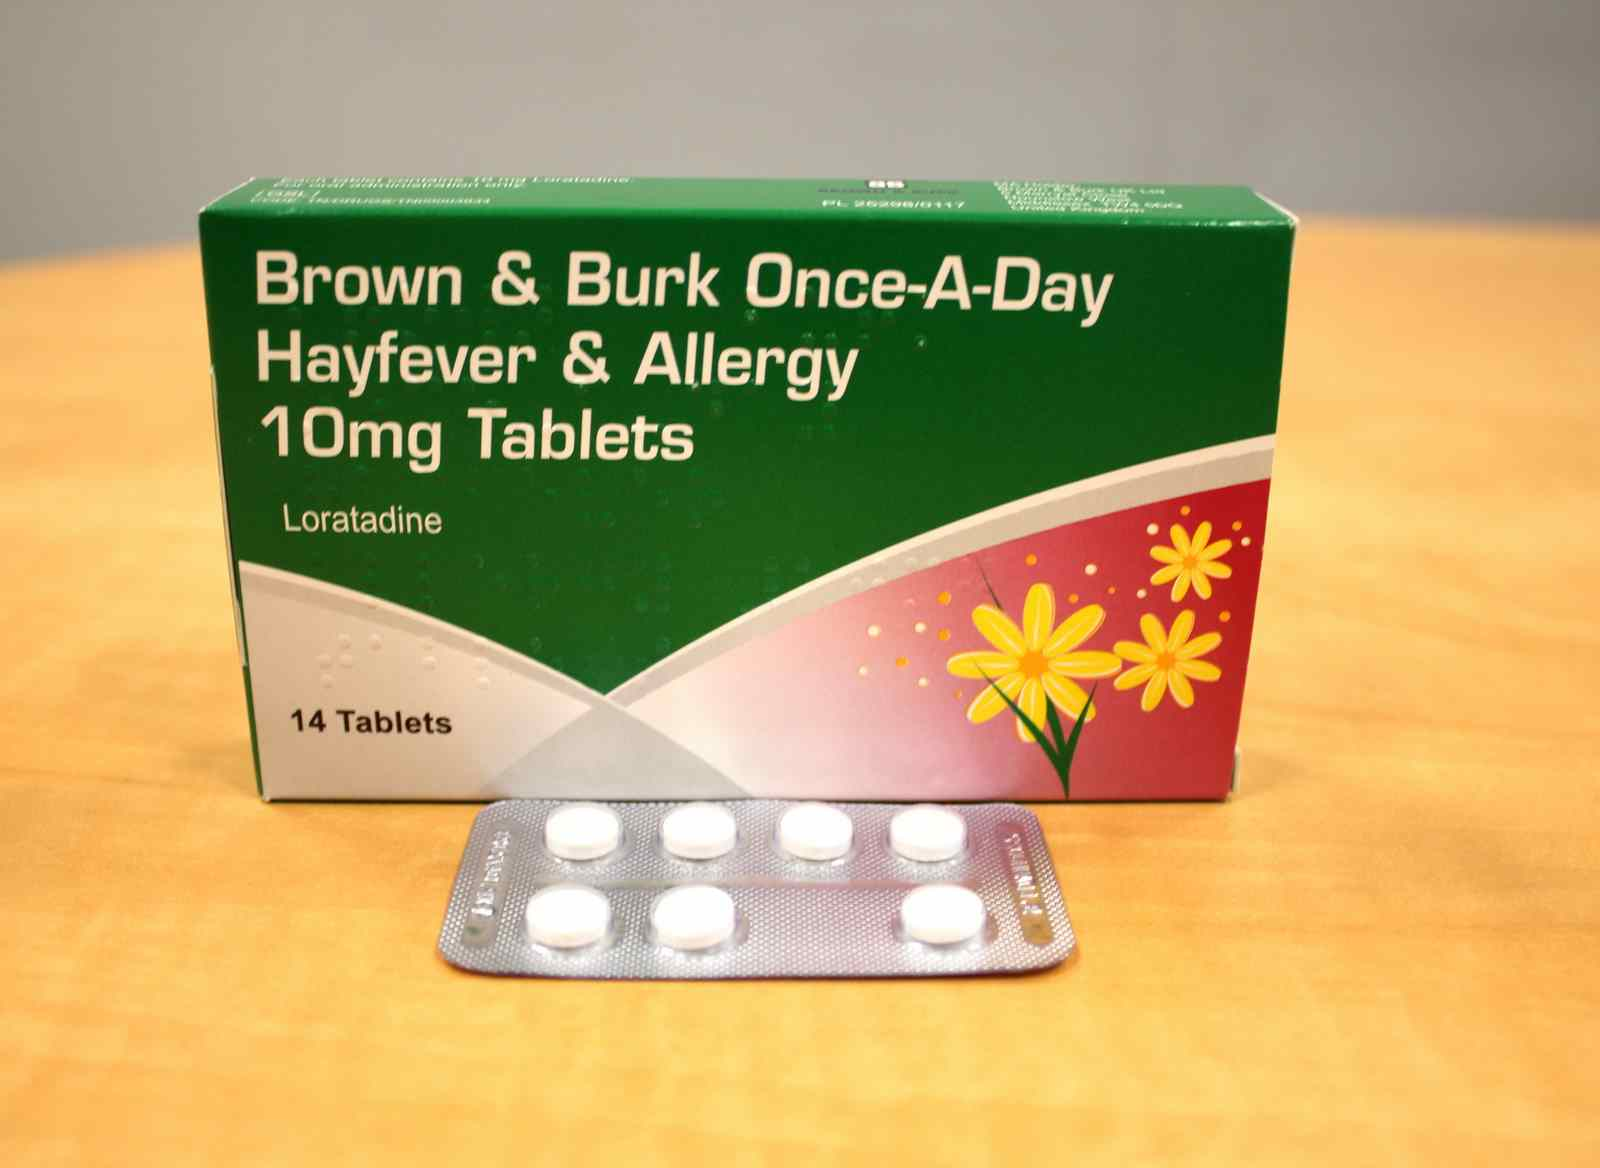 Once -A-Day Hayfever & Allergy 10 mg Tablets - Brown & Burk